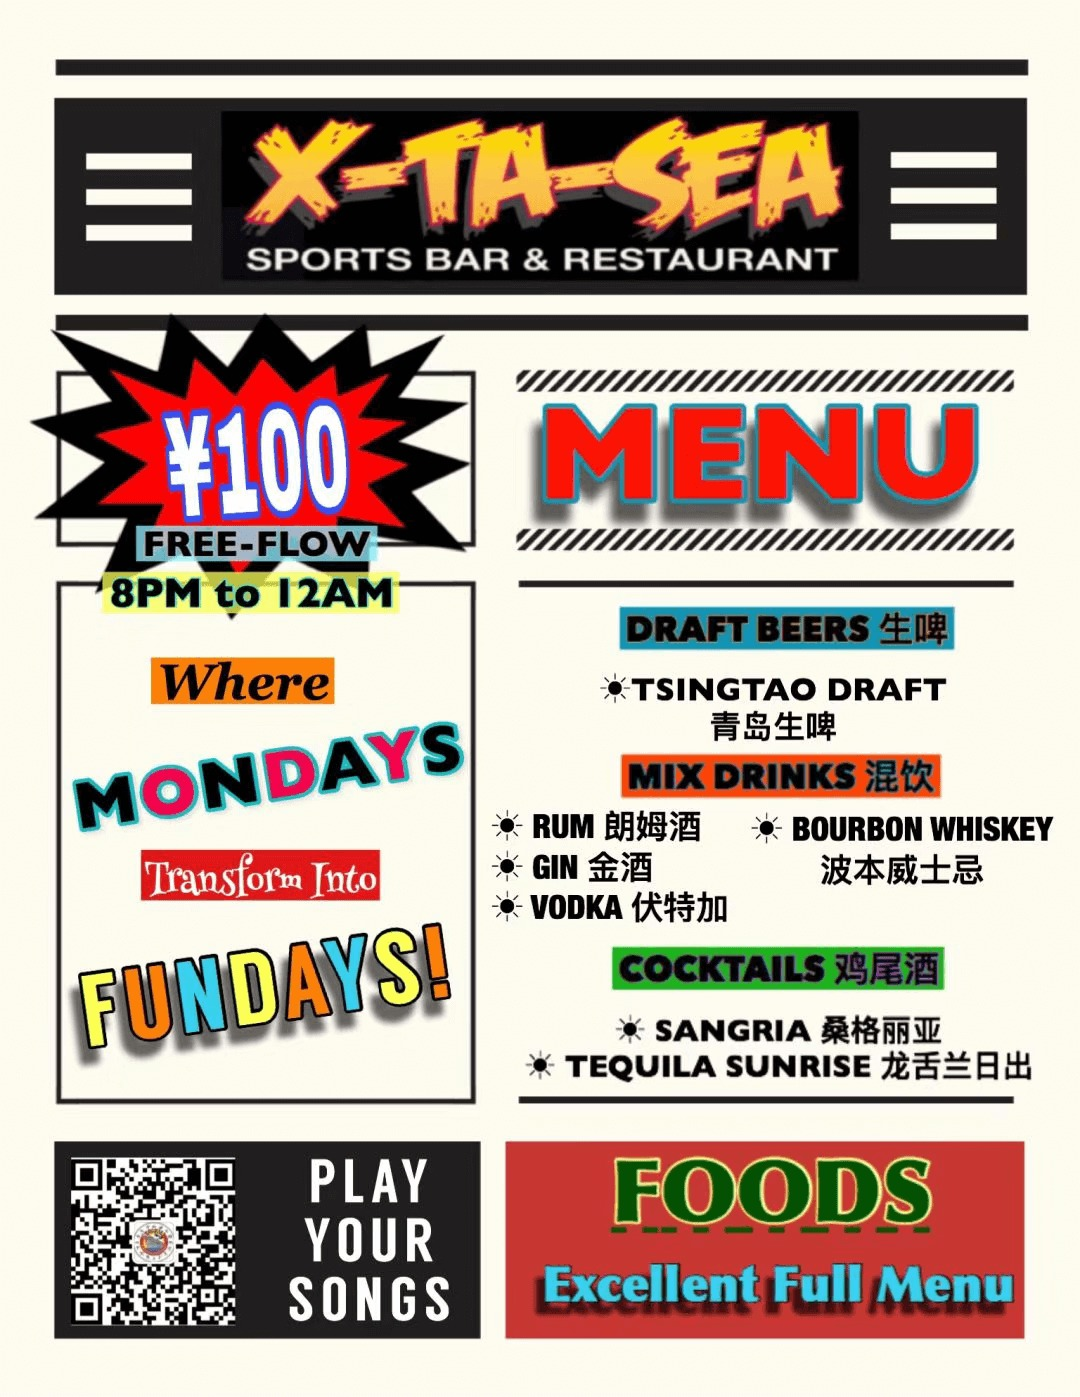 【X-TA-SEA】Monday FUNdays/Daily Special